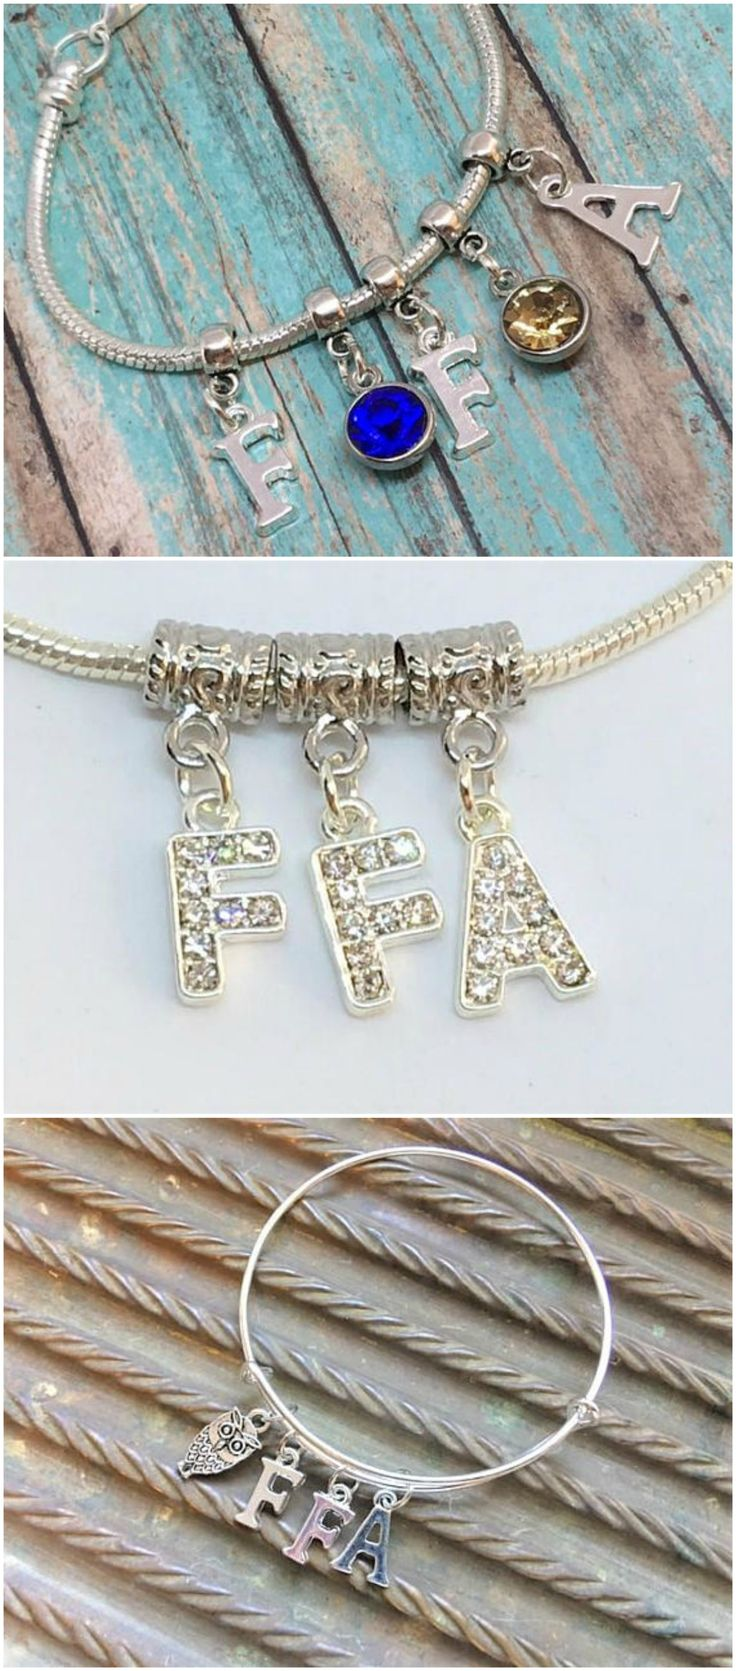 FFA Jewelry & Gifts | Whippoorwill Valley